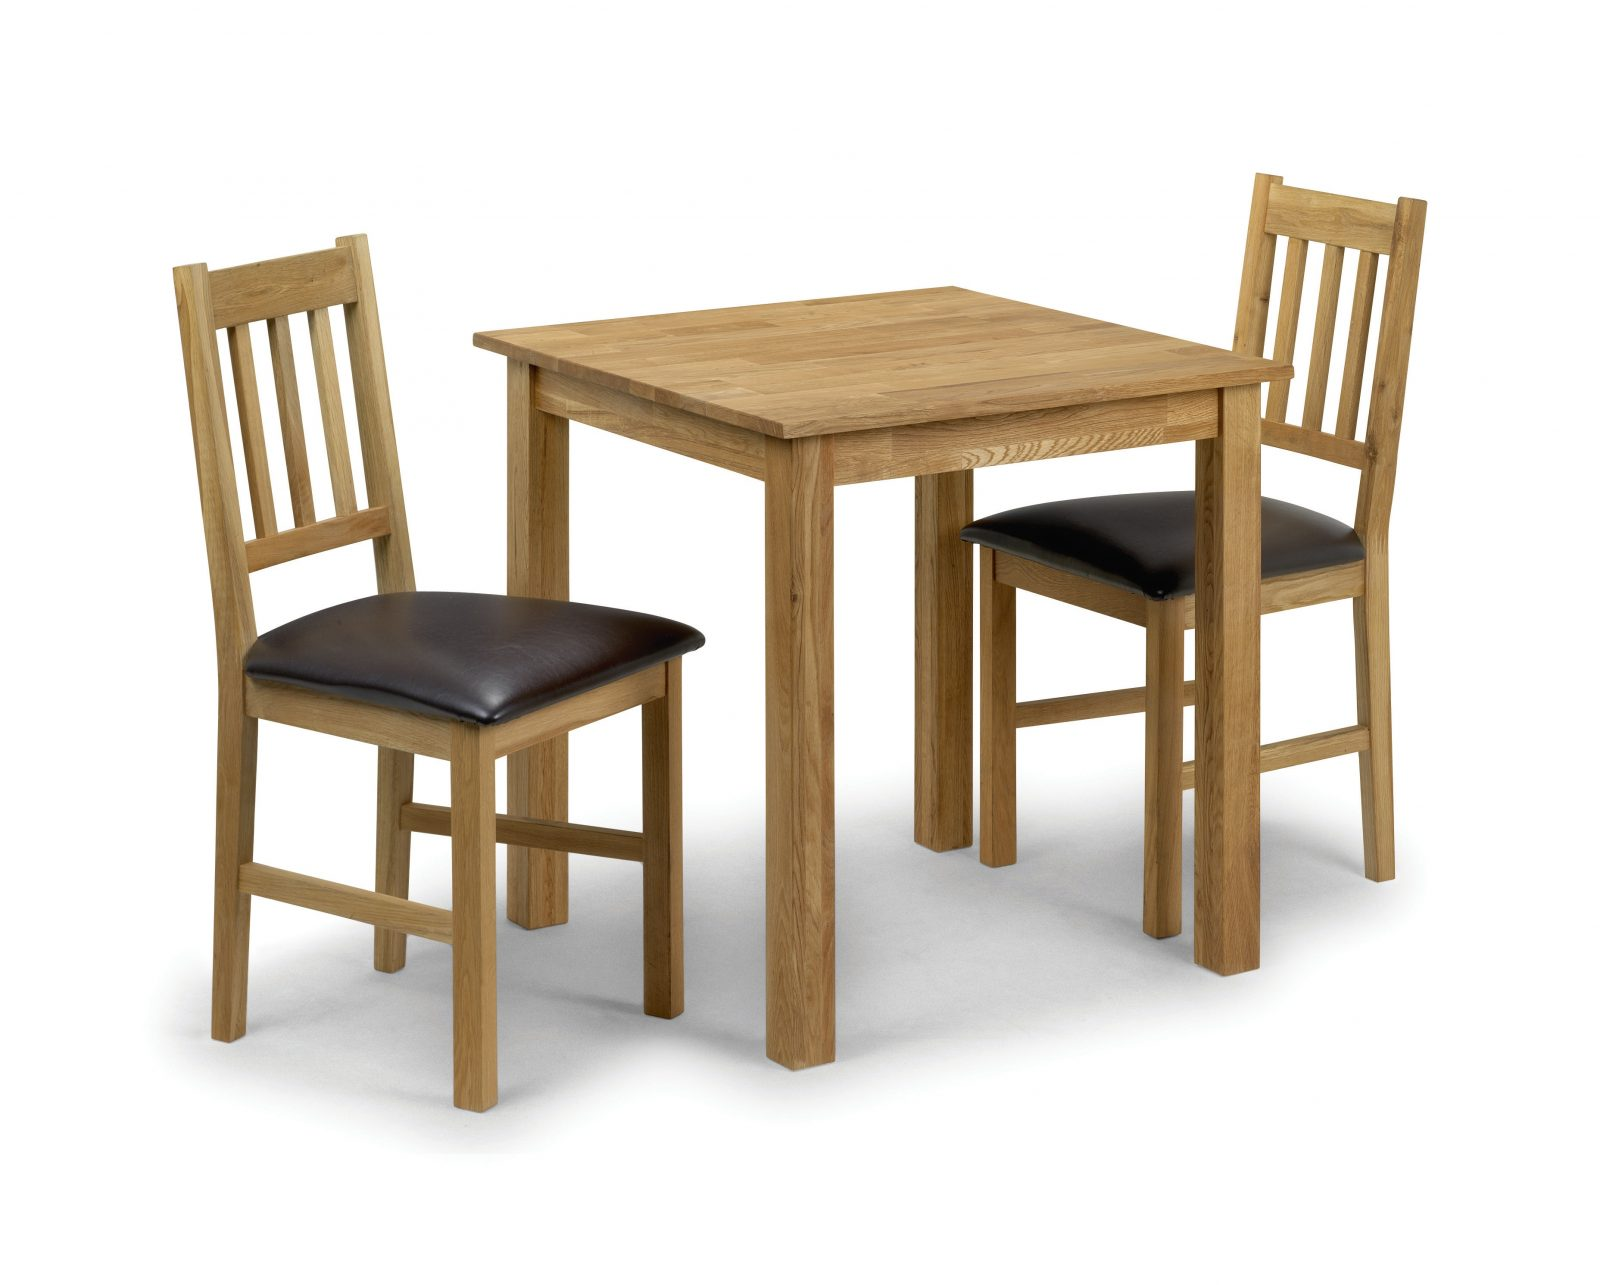 Copgrove Compact Square Table + 2 Chairs